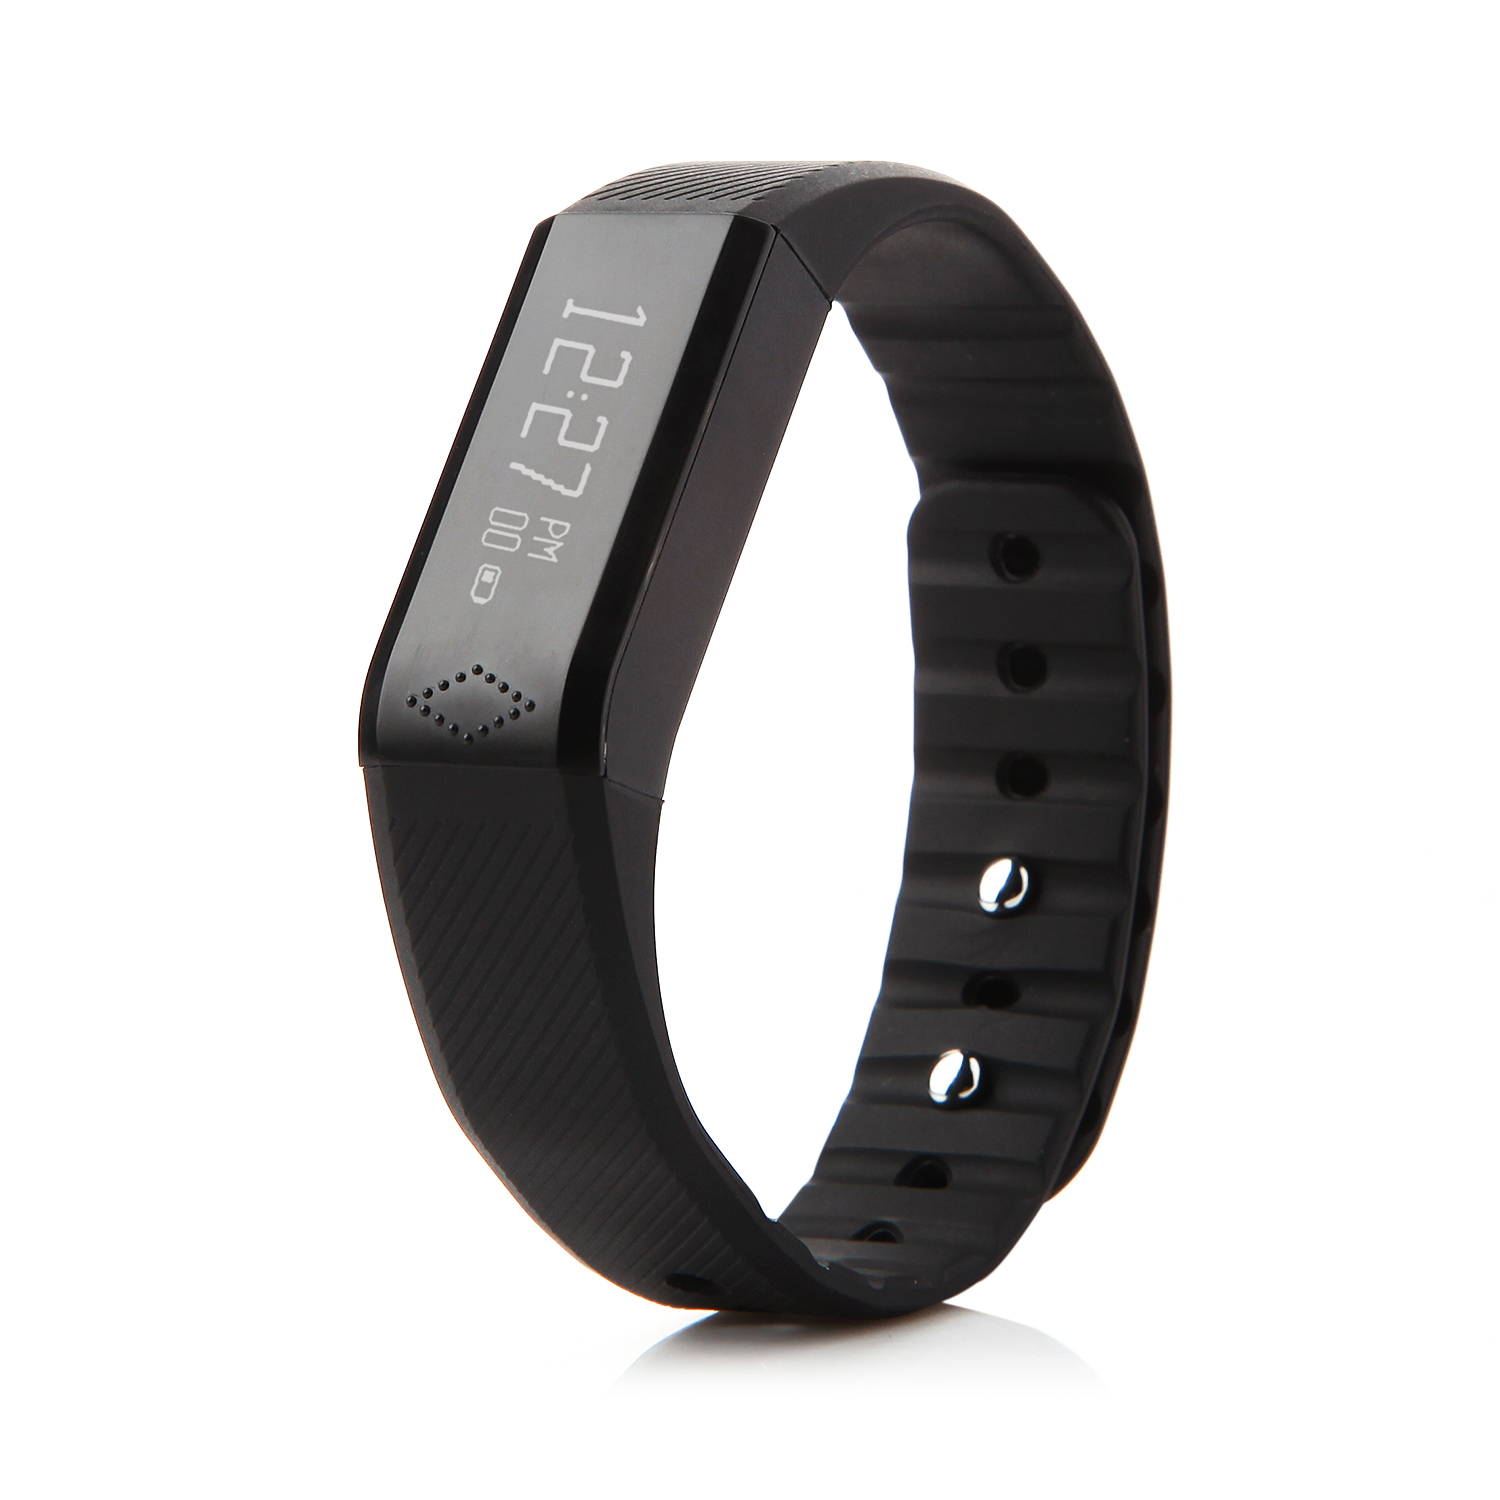 "Vidonn X6 0.88"" Bluetooth 4.0 IP65 Smart Wristband with Sleep Monitor for Android iOS"